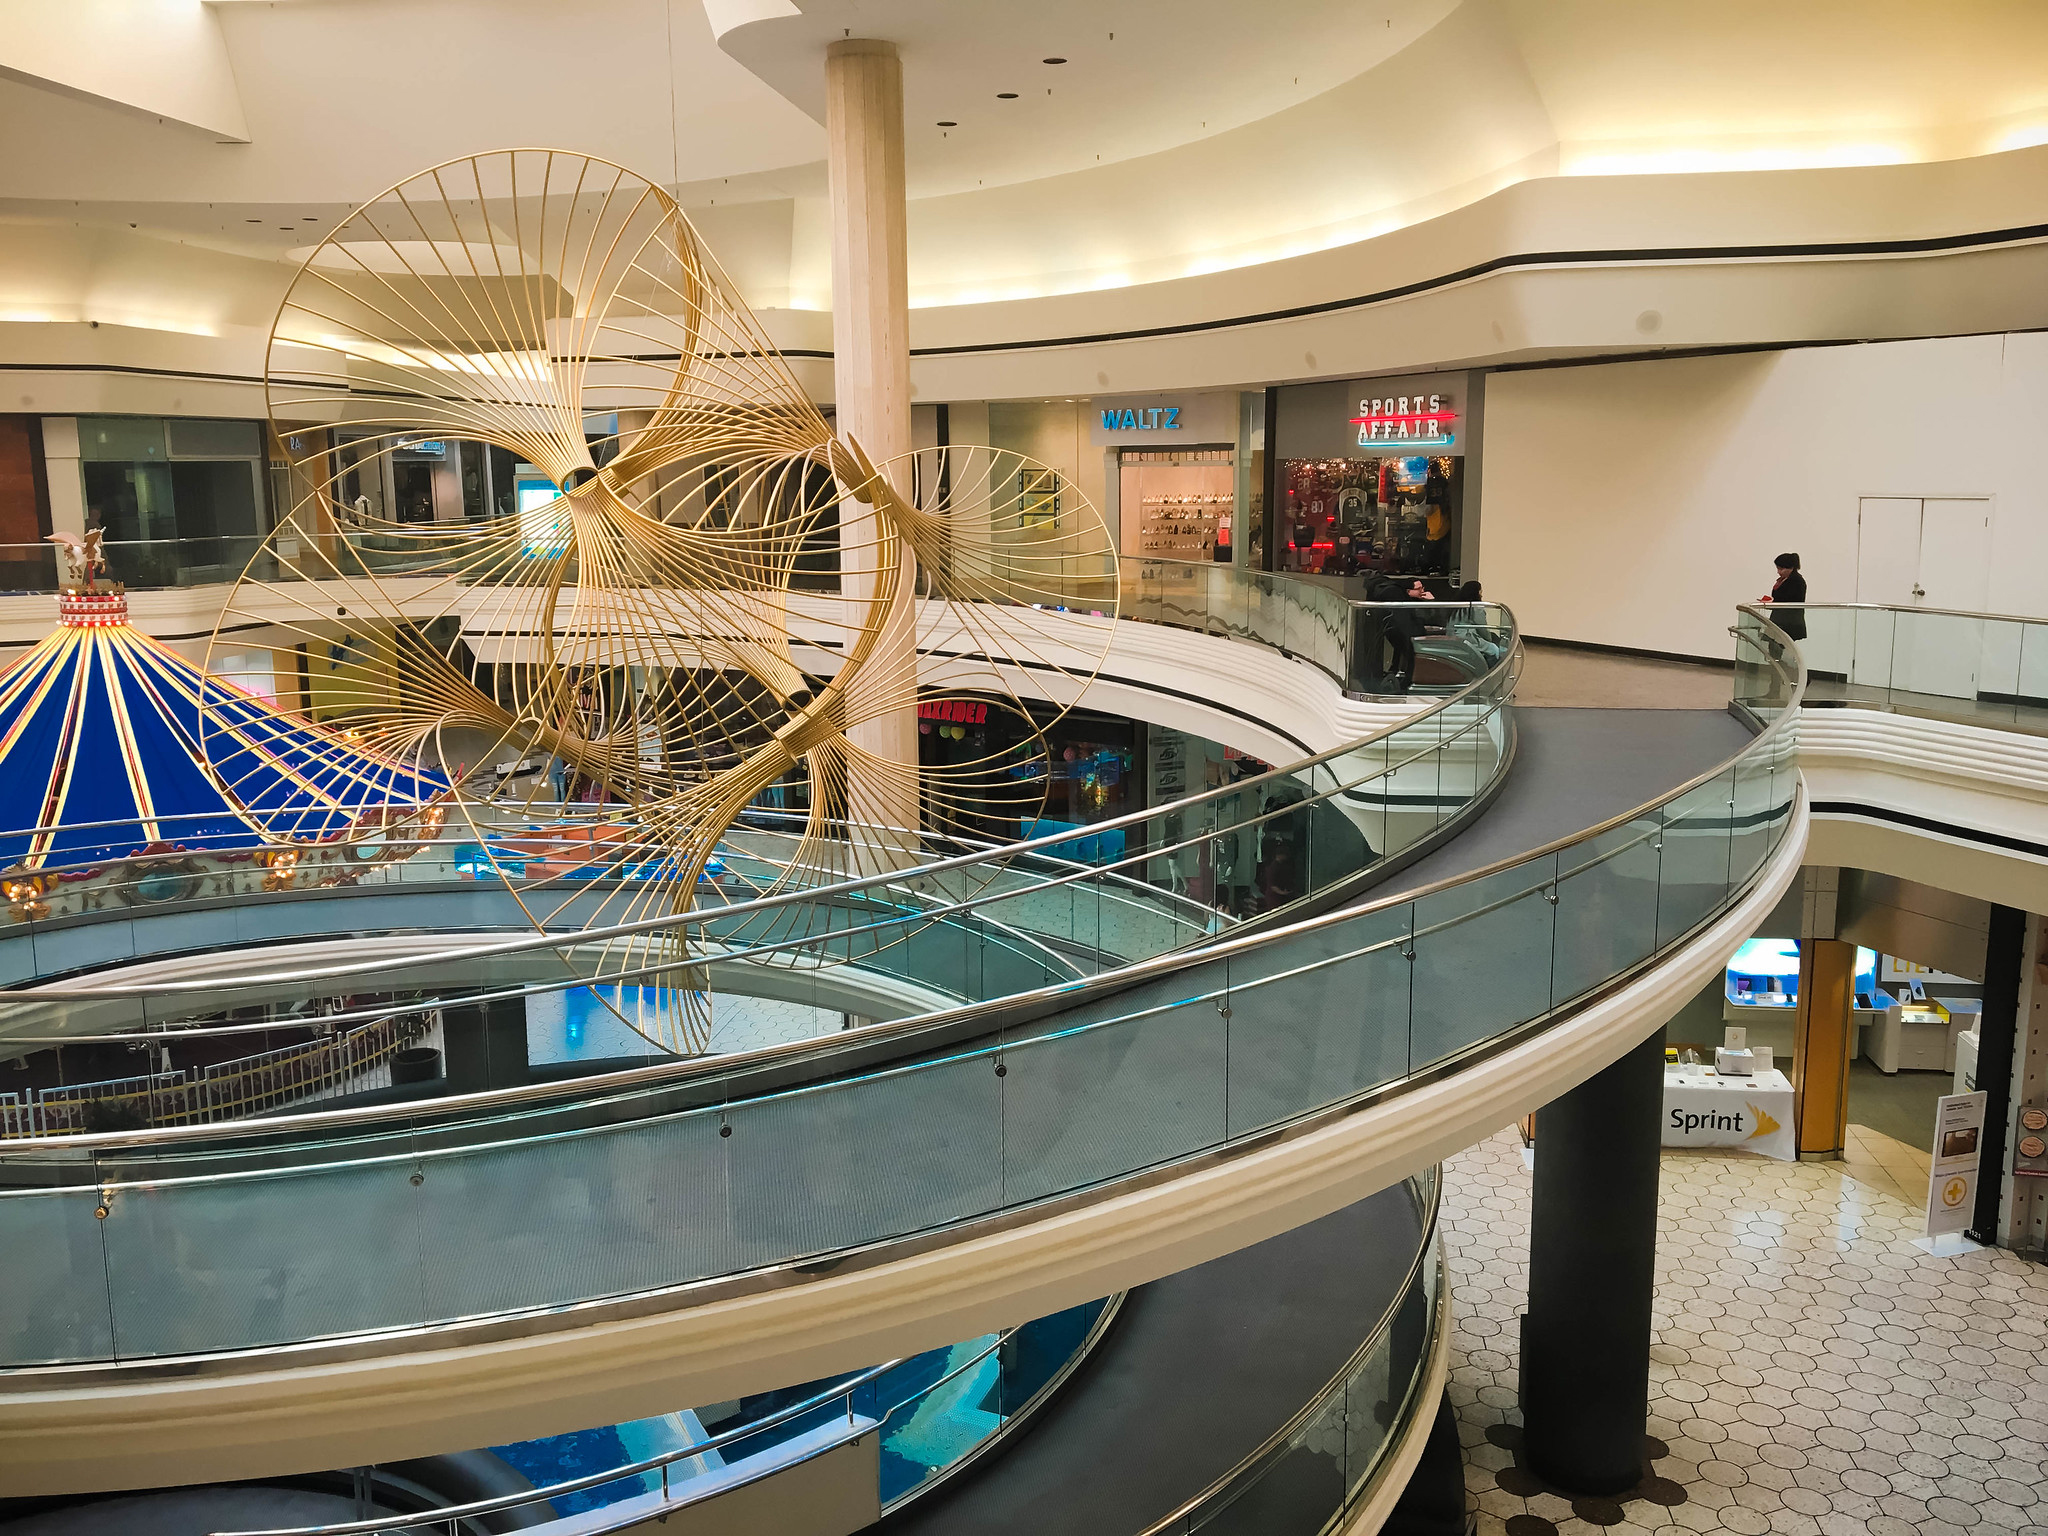 Spiral ramp in an empty shopping mall